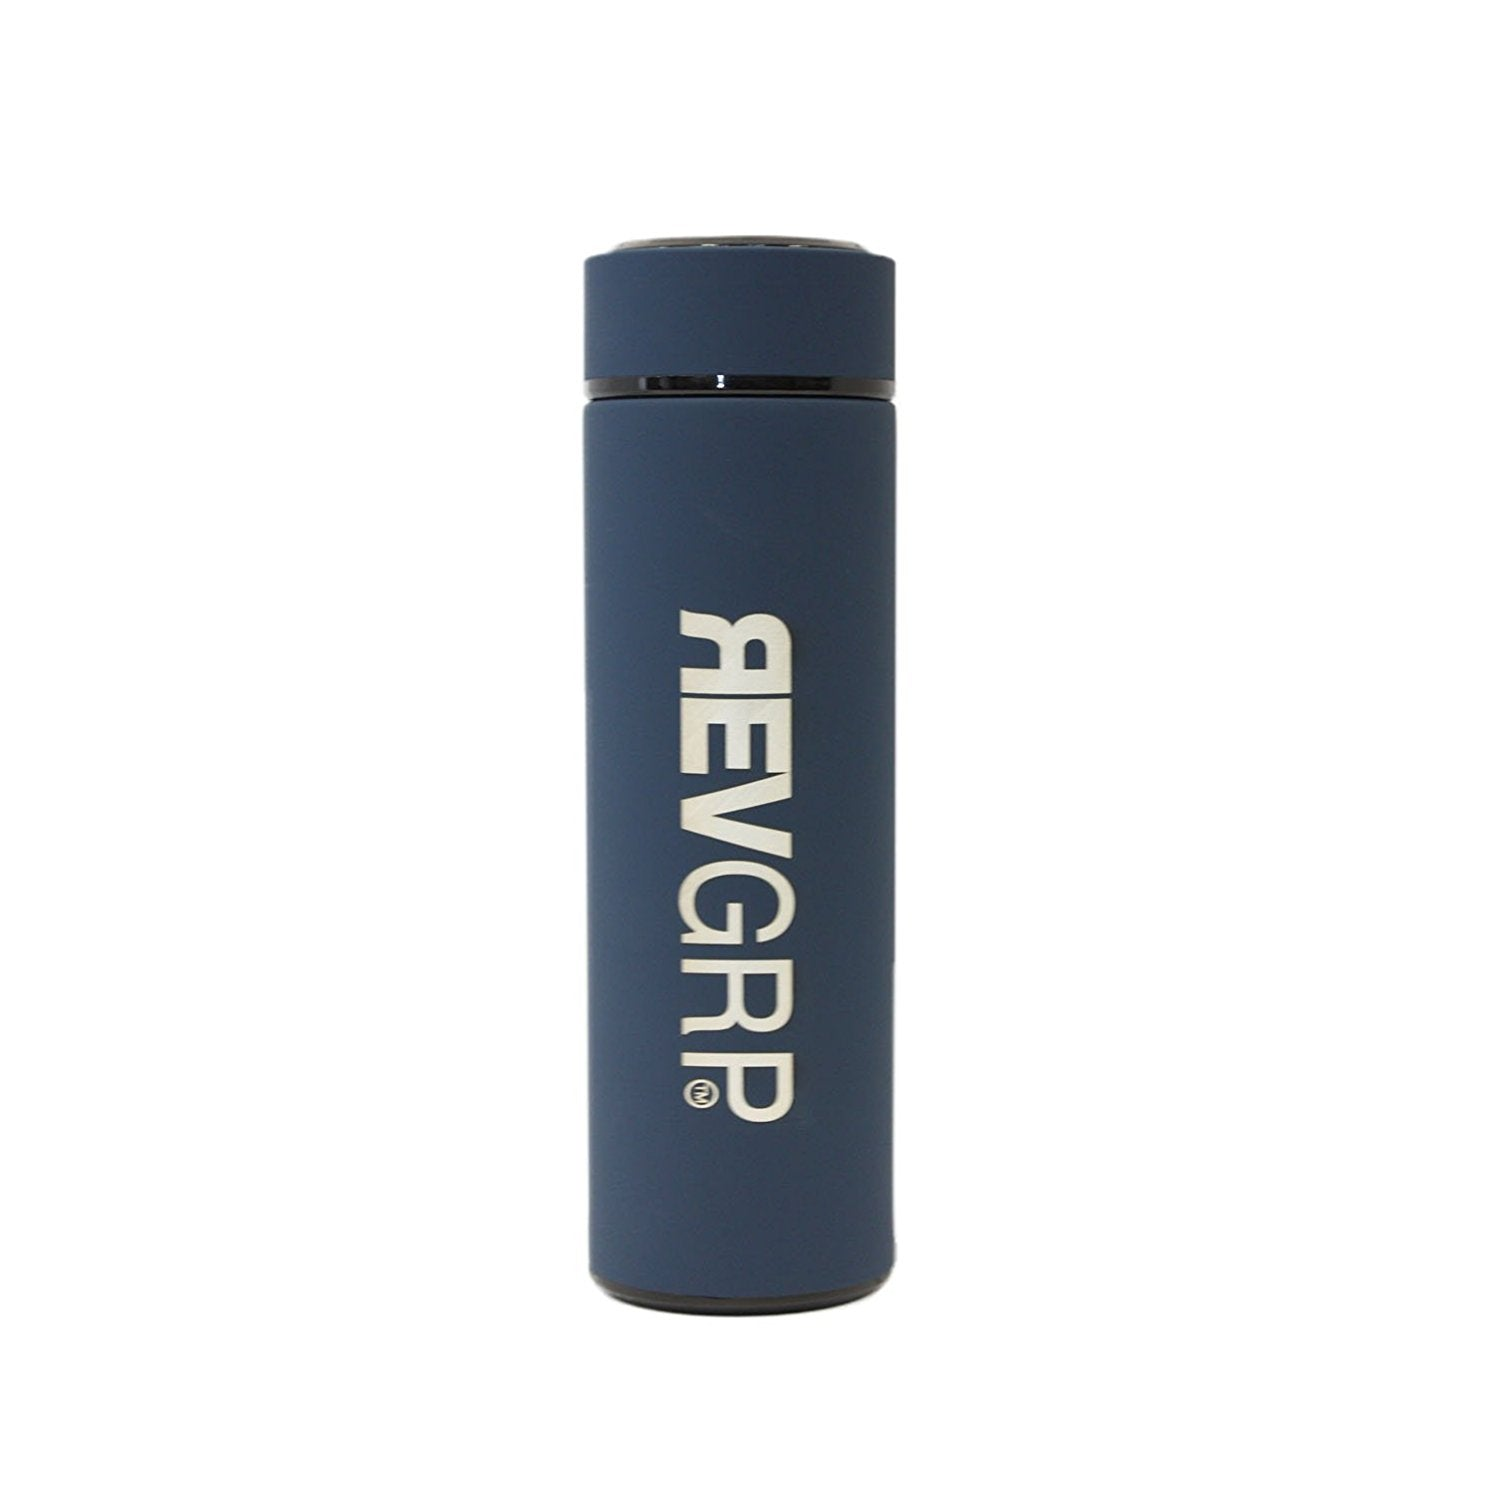 Blue REVMAN Flask